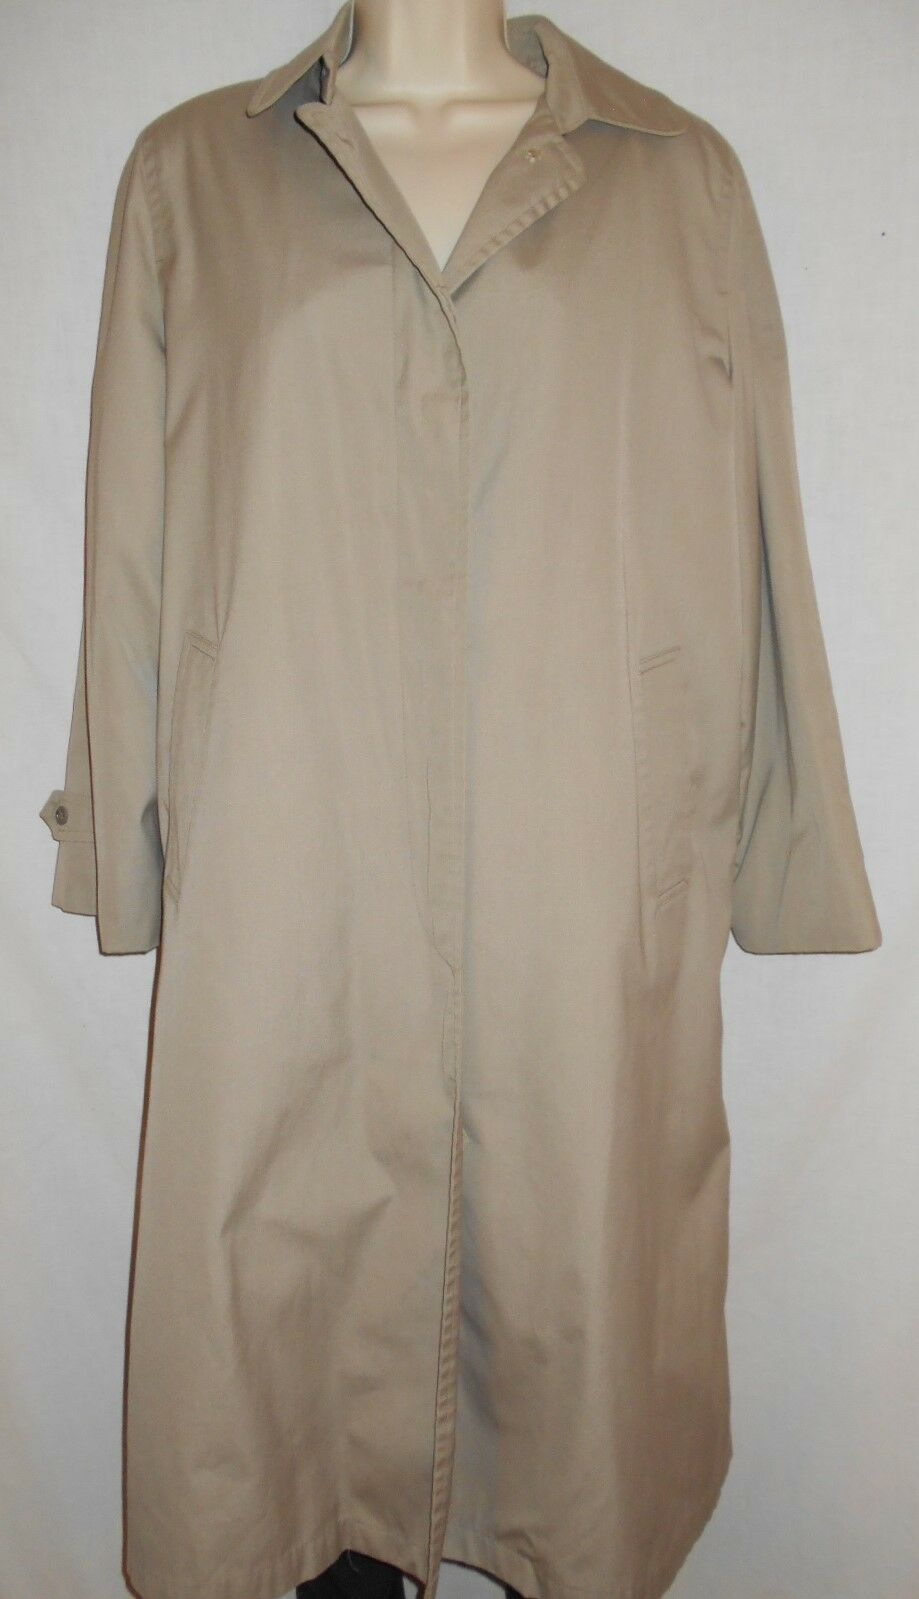 London London London Fog Trench Coat 10R Womens Tan Rain Overcoat VINTAGE USA CLASSIC 7t3 5db158